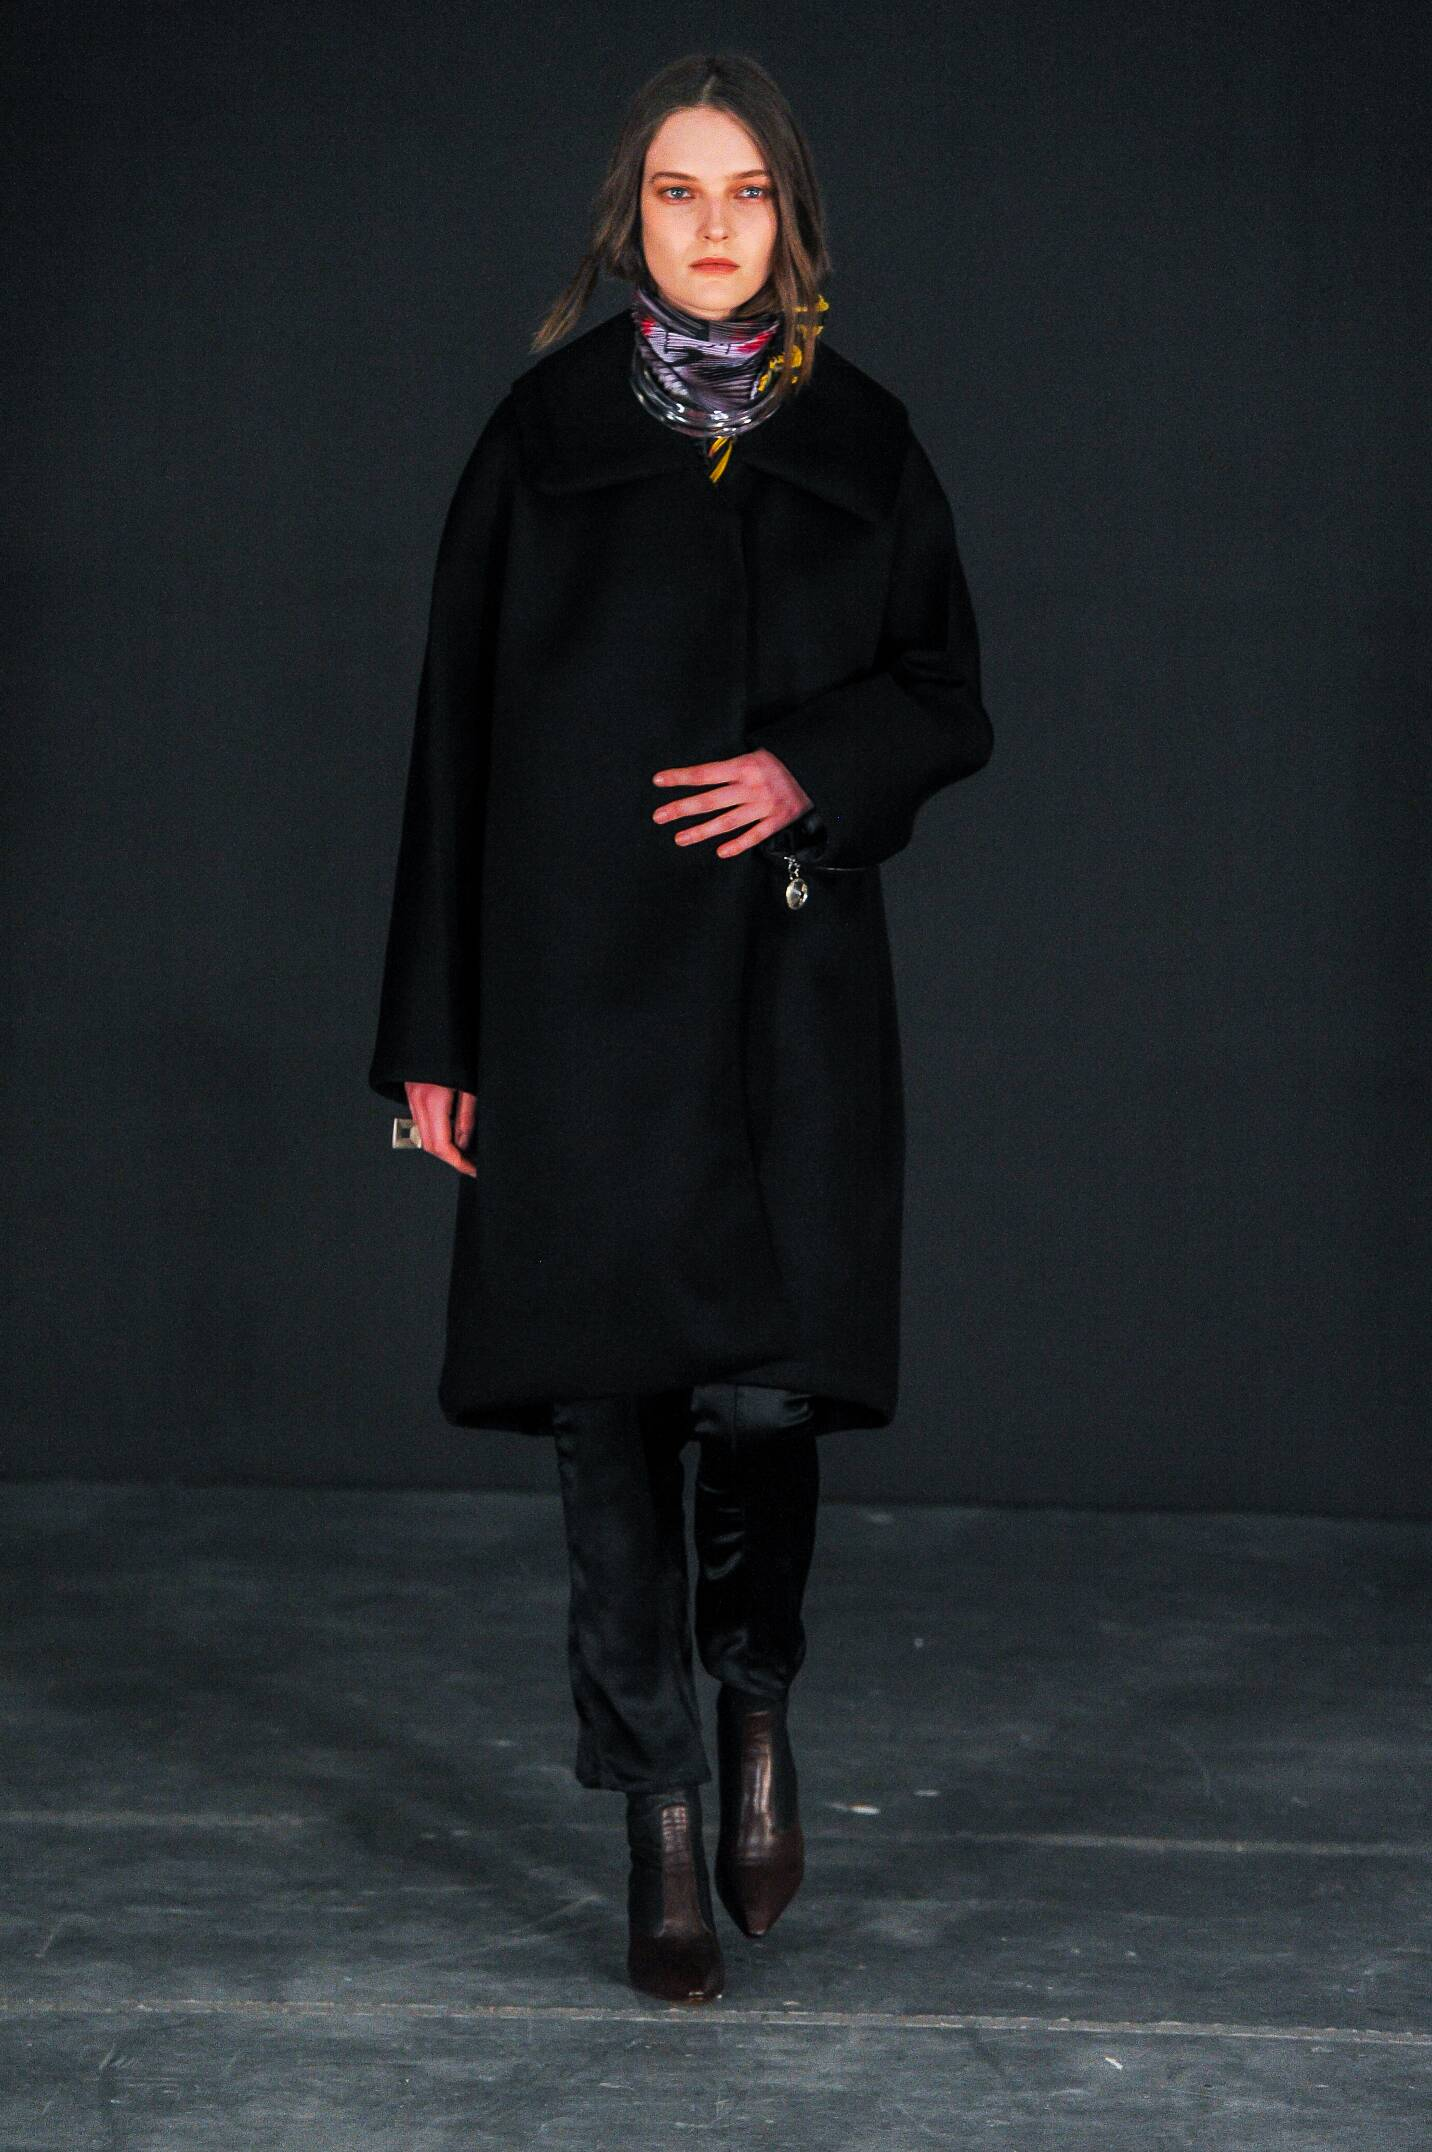 2016 Fall Fashion Woman Thomas Tait Collection